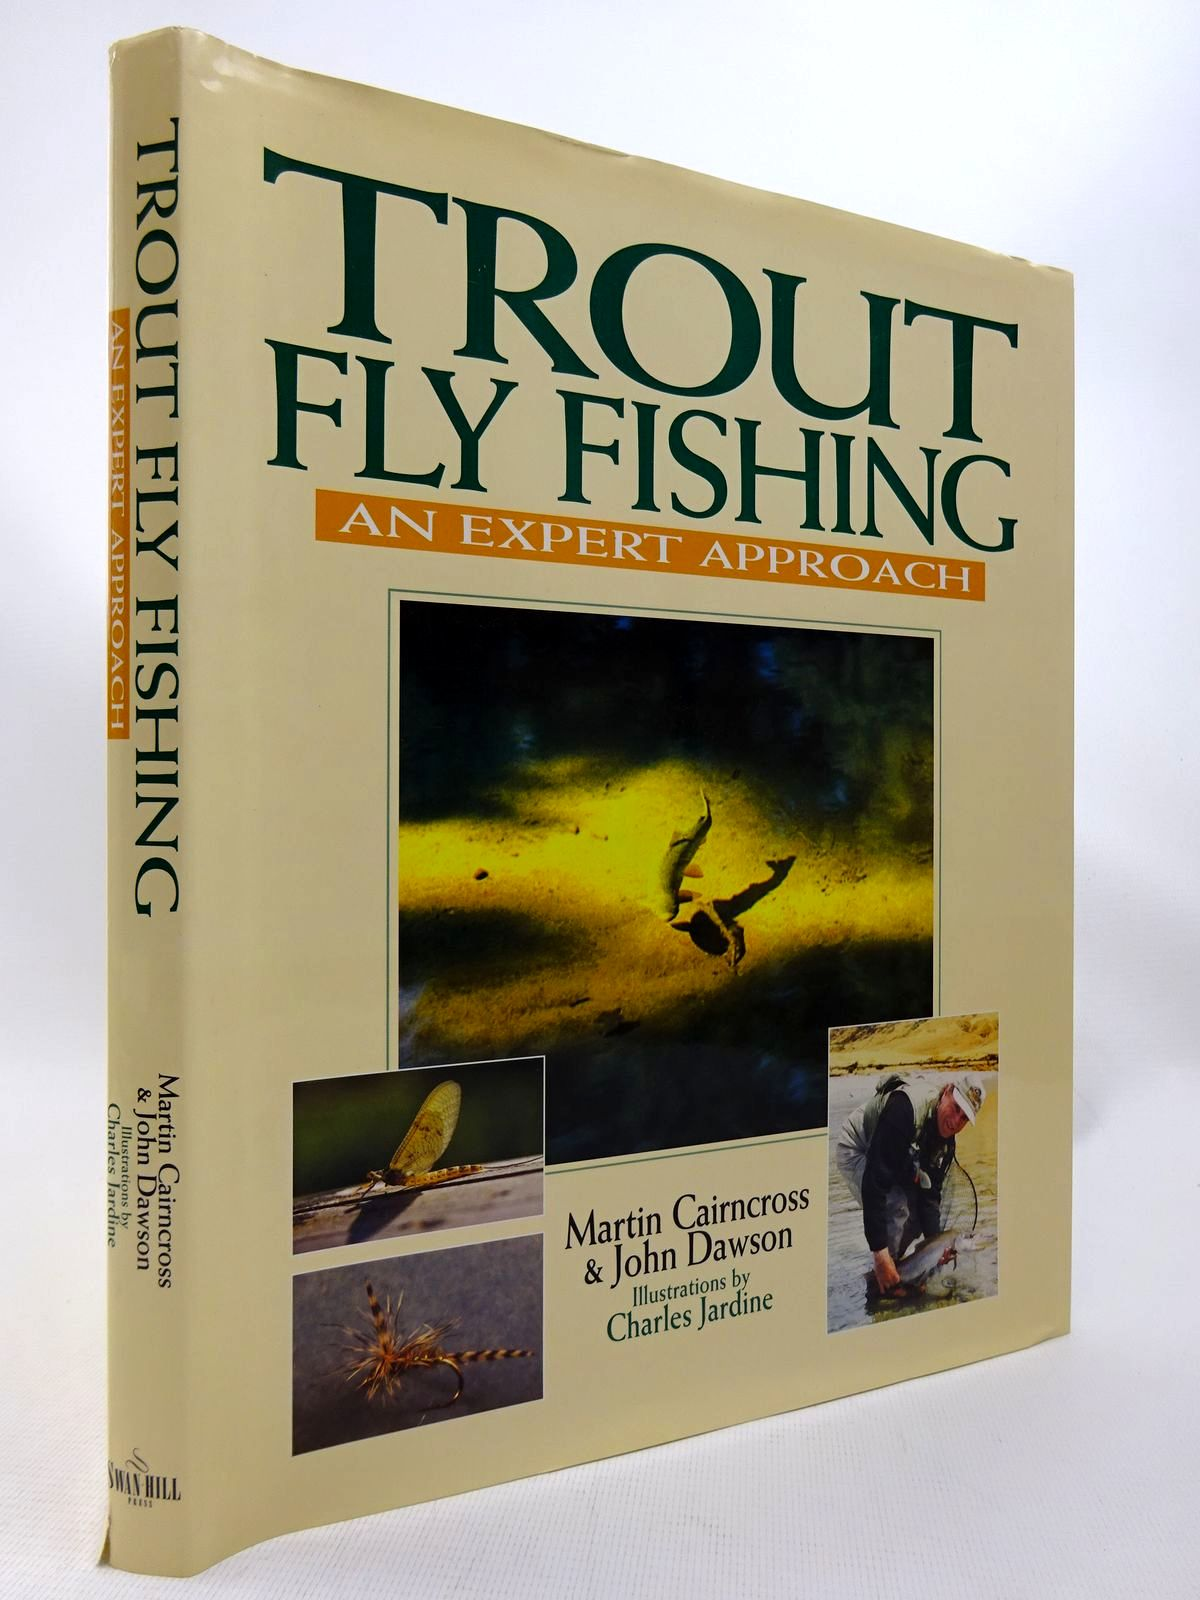 Photo of TROUT FLY FISHING: AN EXPERT APPROACH written by Cairncross, Martin Dawson, John illustrated by Jardine, Charles published by Swan Hill Press (STOCK CODE: 1815878)  for sale by Stella & Rose's Books